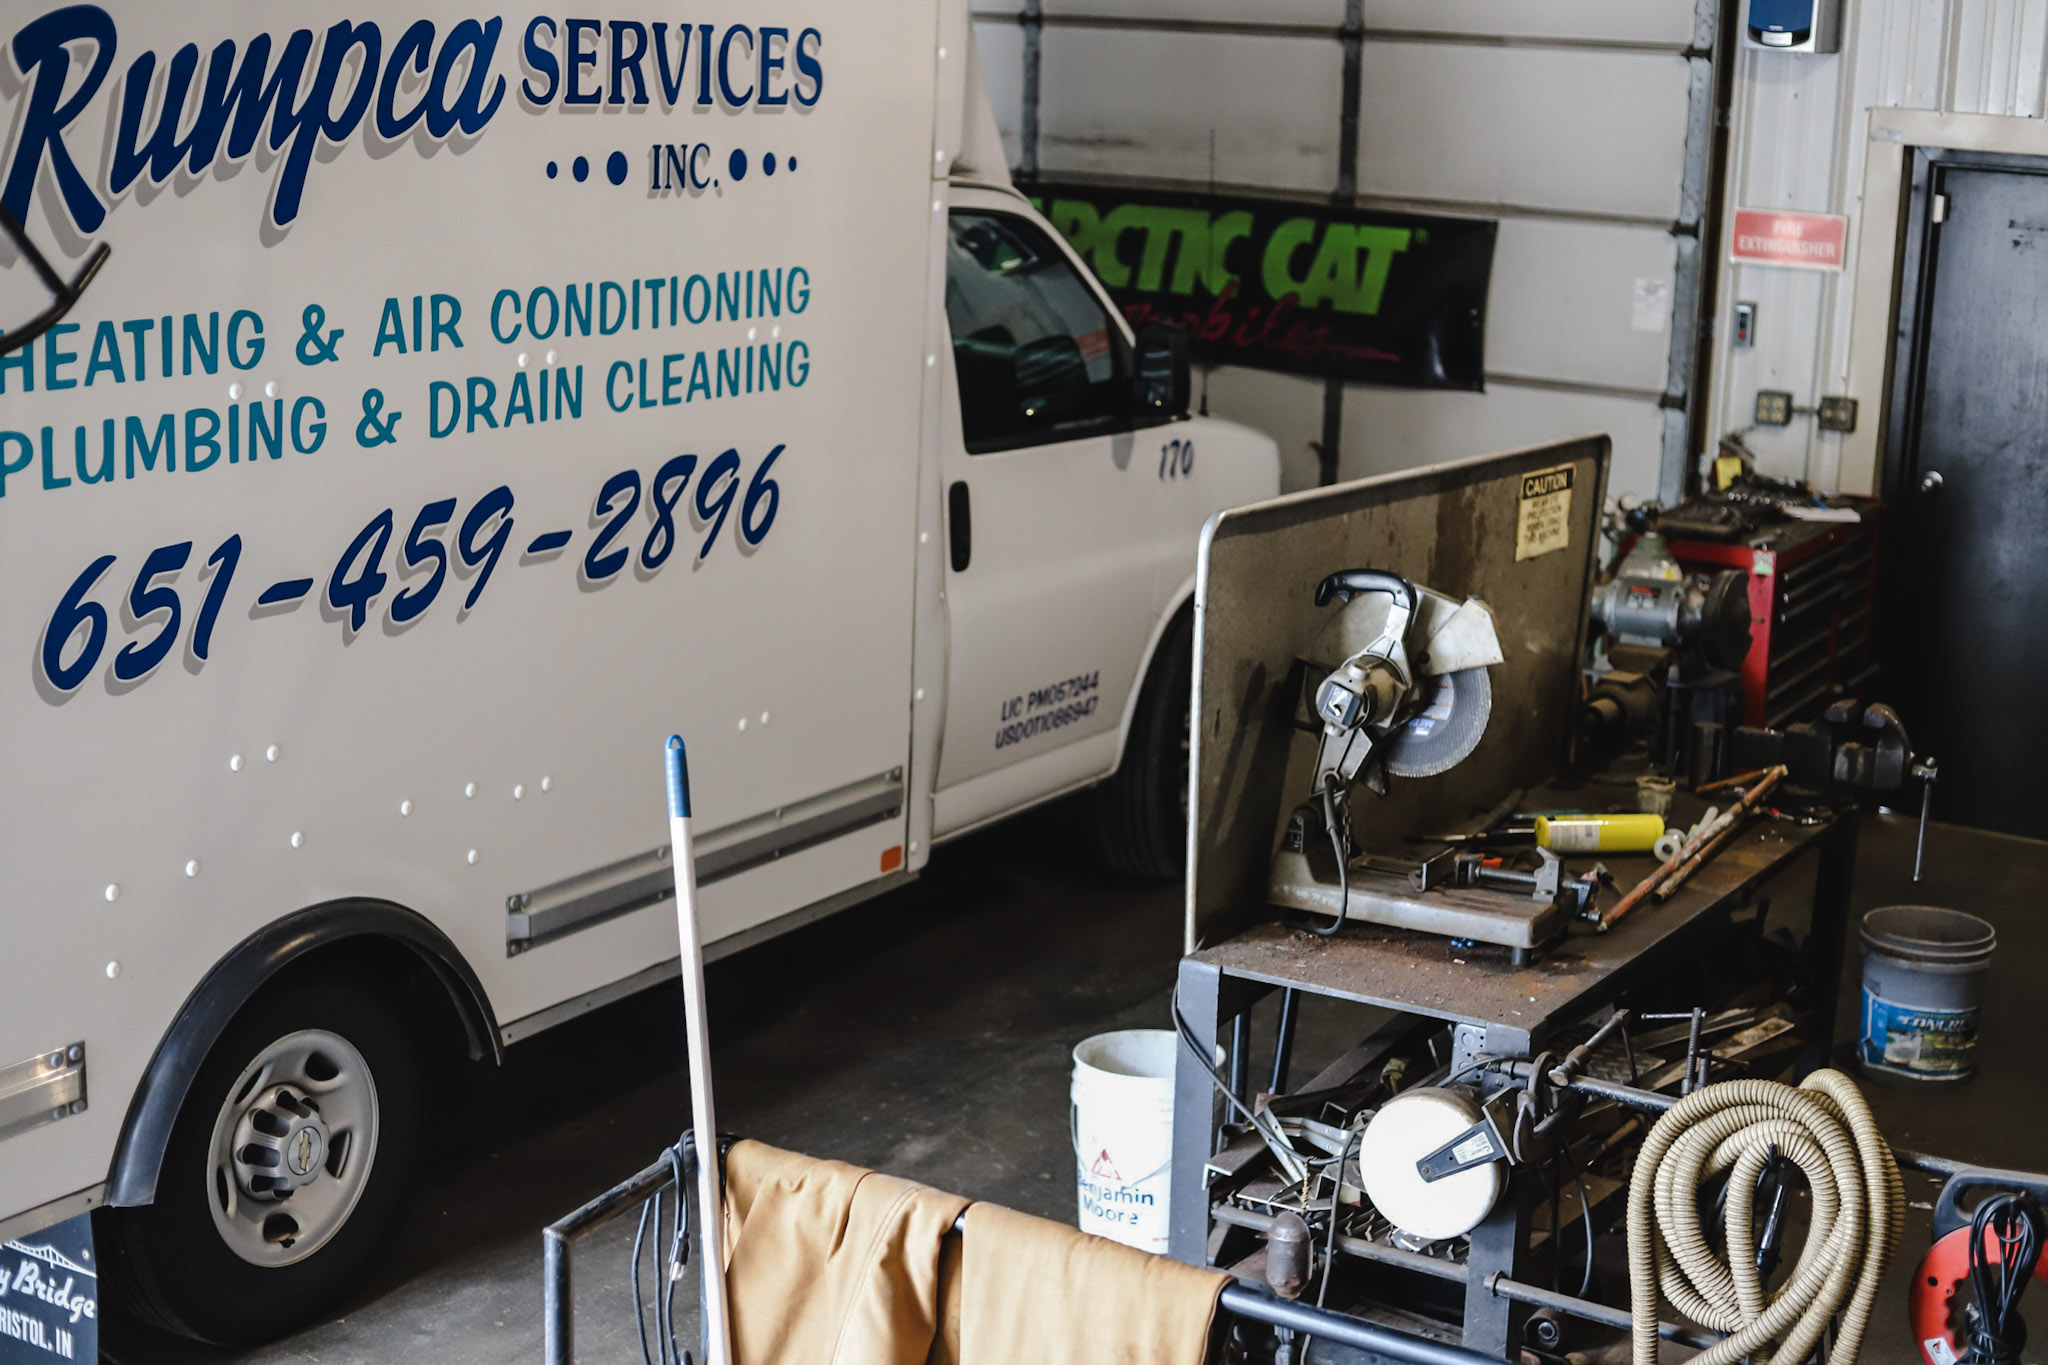 Furnace Installation Services Furnace Contractor Mn